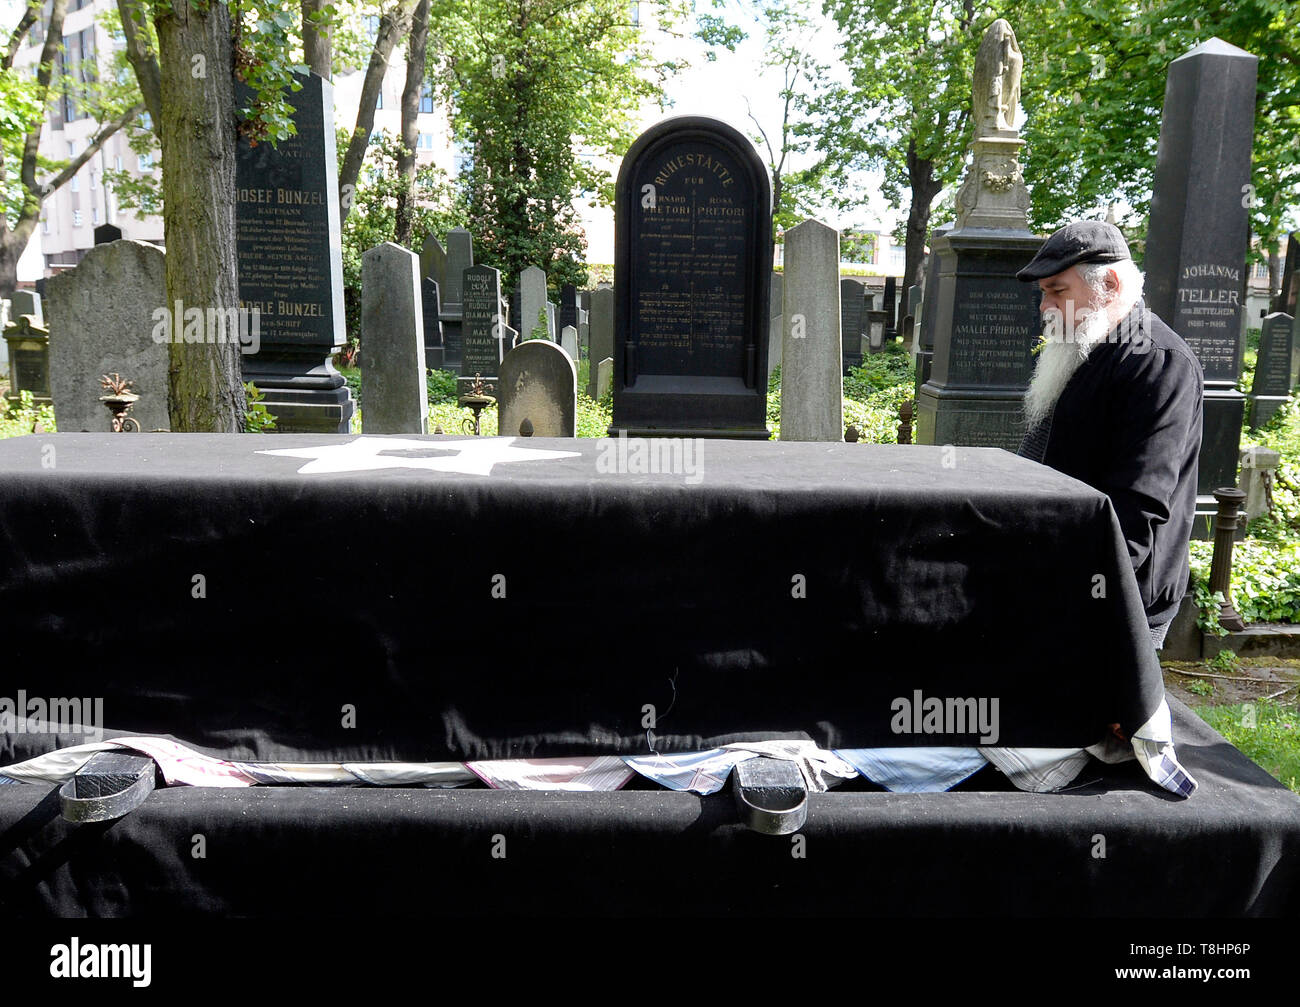 Prague, Czech Republic. 13th May, 2019. The chairman of the Prague Jewish Community and long-standing director of the Terezin (Theresienstadt) Memorial, Jan Munk, died at the age of 72 after a long disease. The funeral of Jan Munk at the New Jewish Cemetery in Prague, Czech Republic, May 13, 2019. Credit: Katerina Sulova/CTK Photo/Alamy Live News Stock Photo